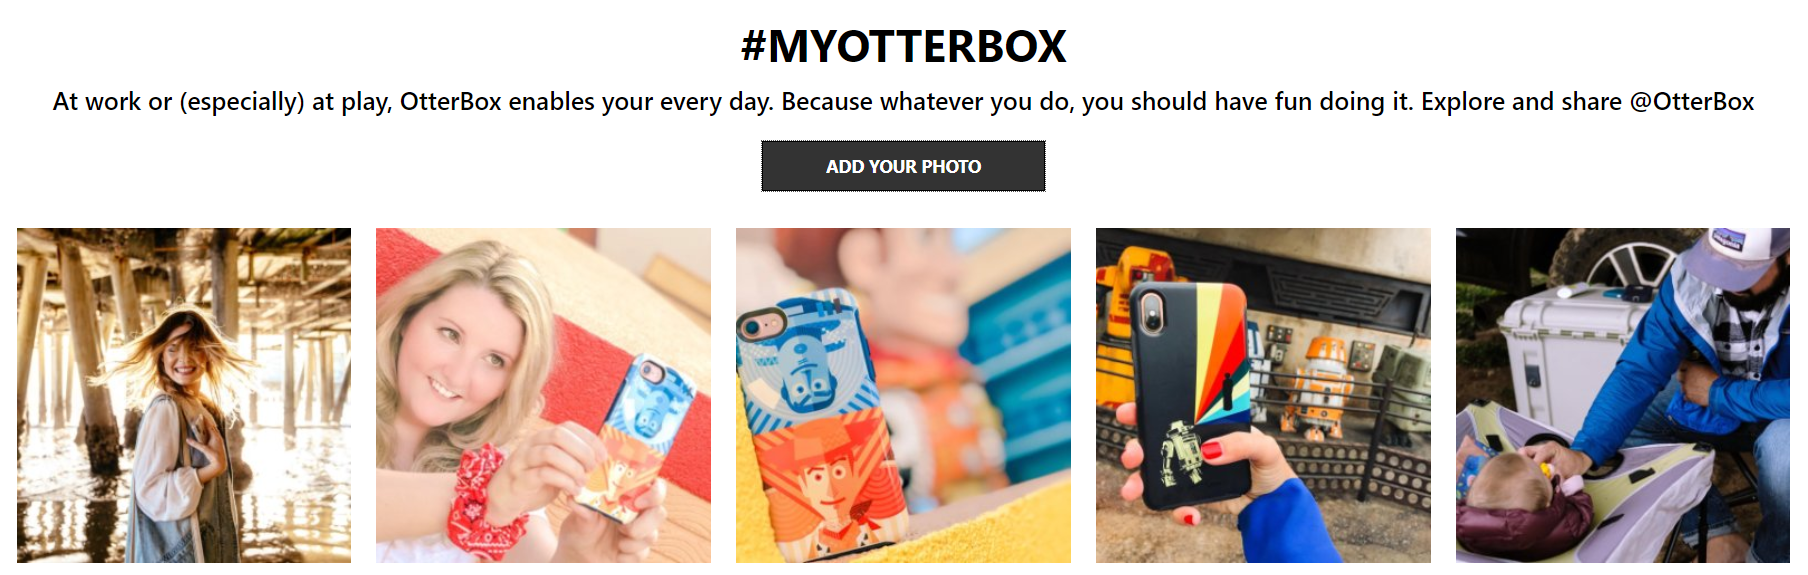 Otterbox features their Instagram photos on-site